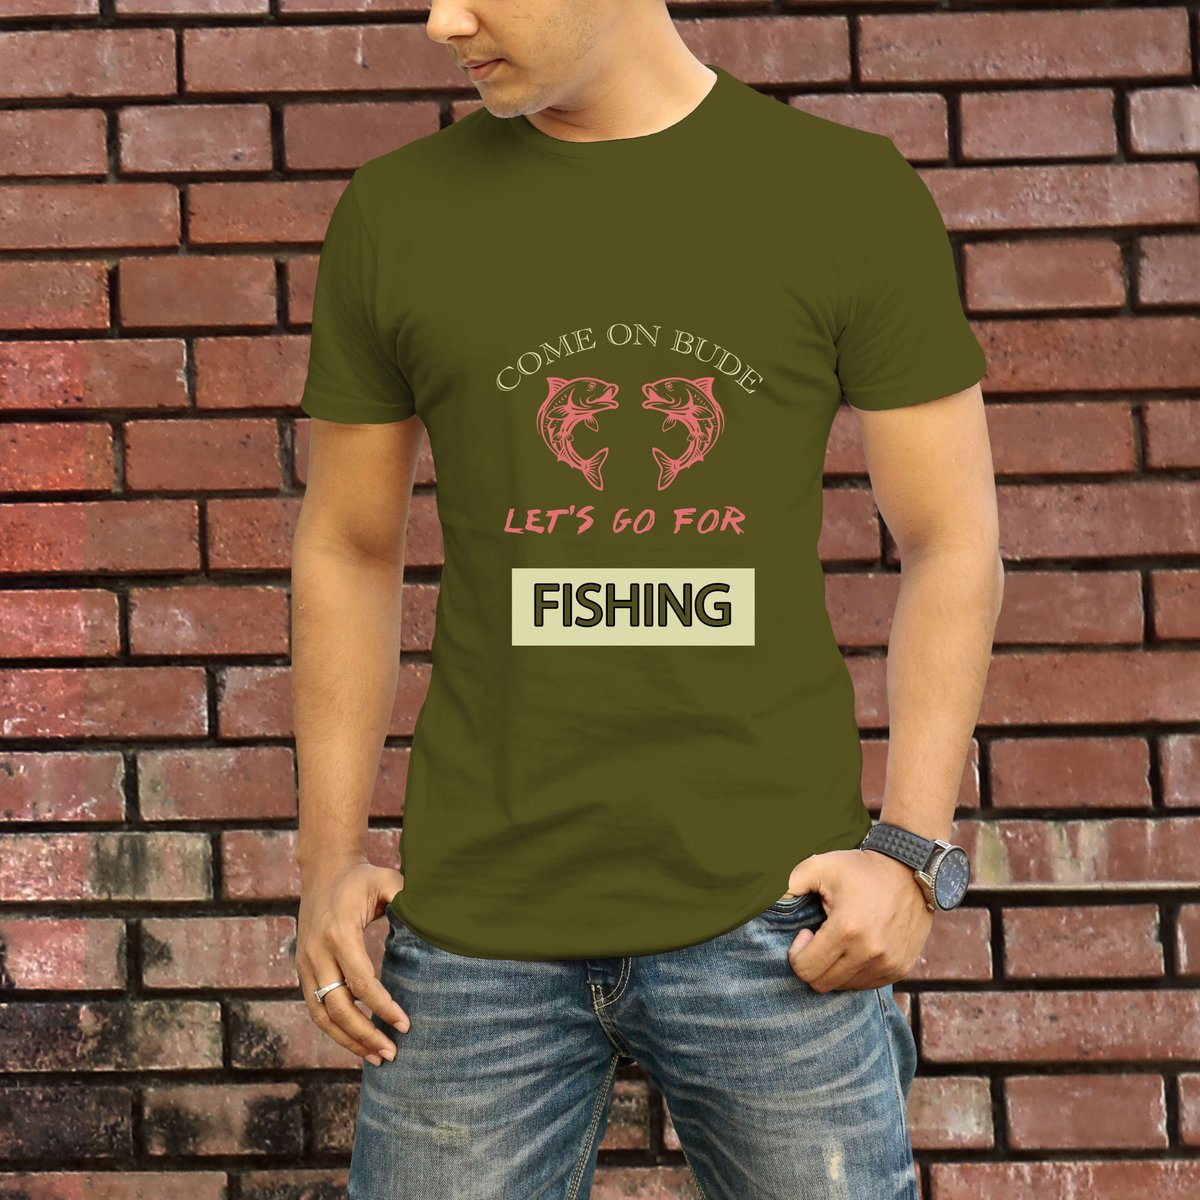 For your amazing #T_shirt design you can just click here link: #3YearsWithHopeWorld #WomensHistoryMonth #MondayMotivation #NewMonth #MondayMorning #AlexSmith #MarchMadness #FreeSwitch #Sarkozy #CandaceOwens #Happy1st #Desnatis #Pengu #Nikki